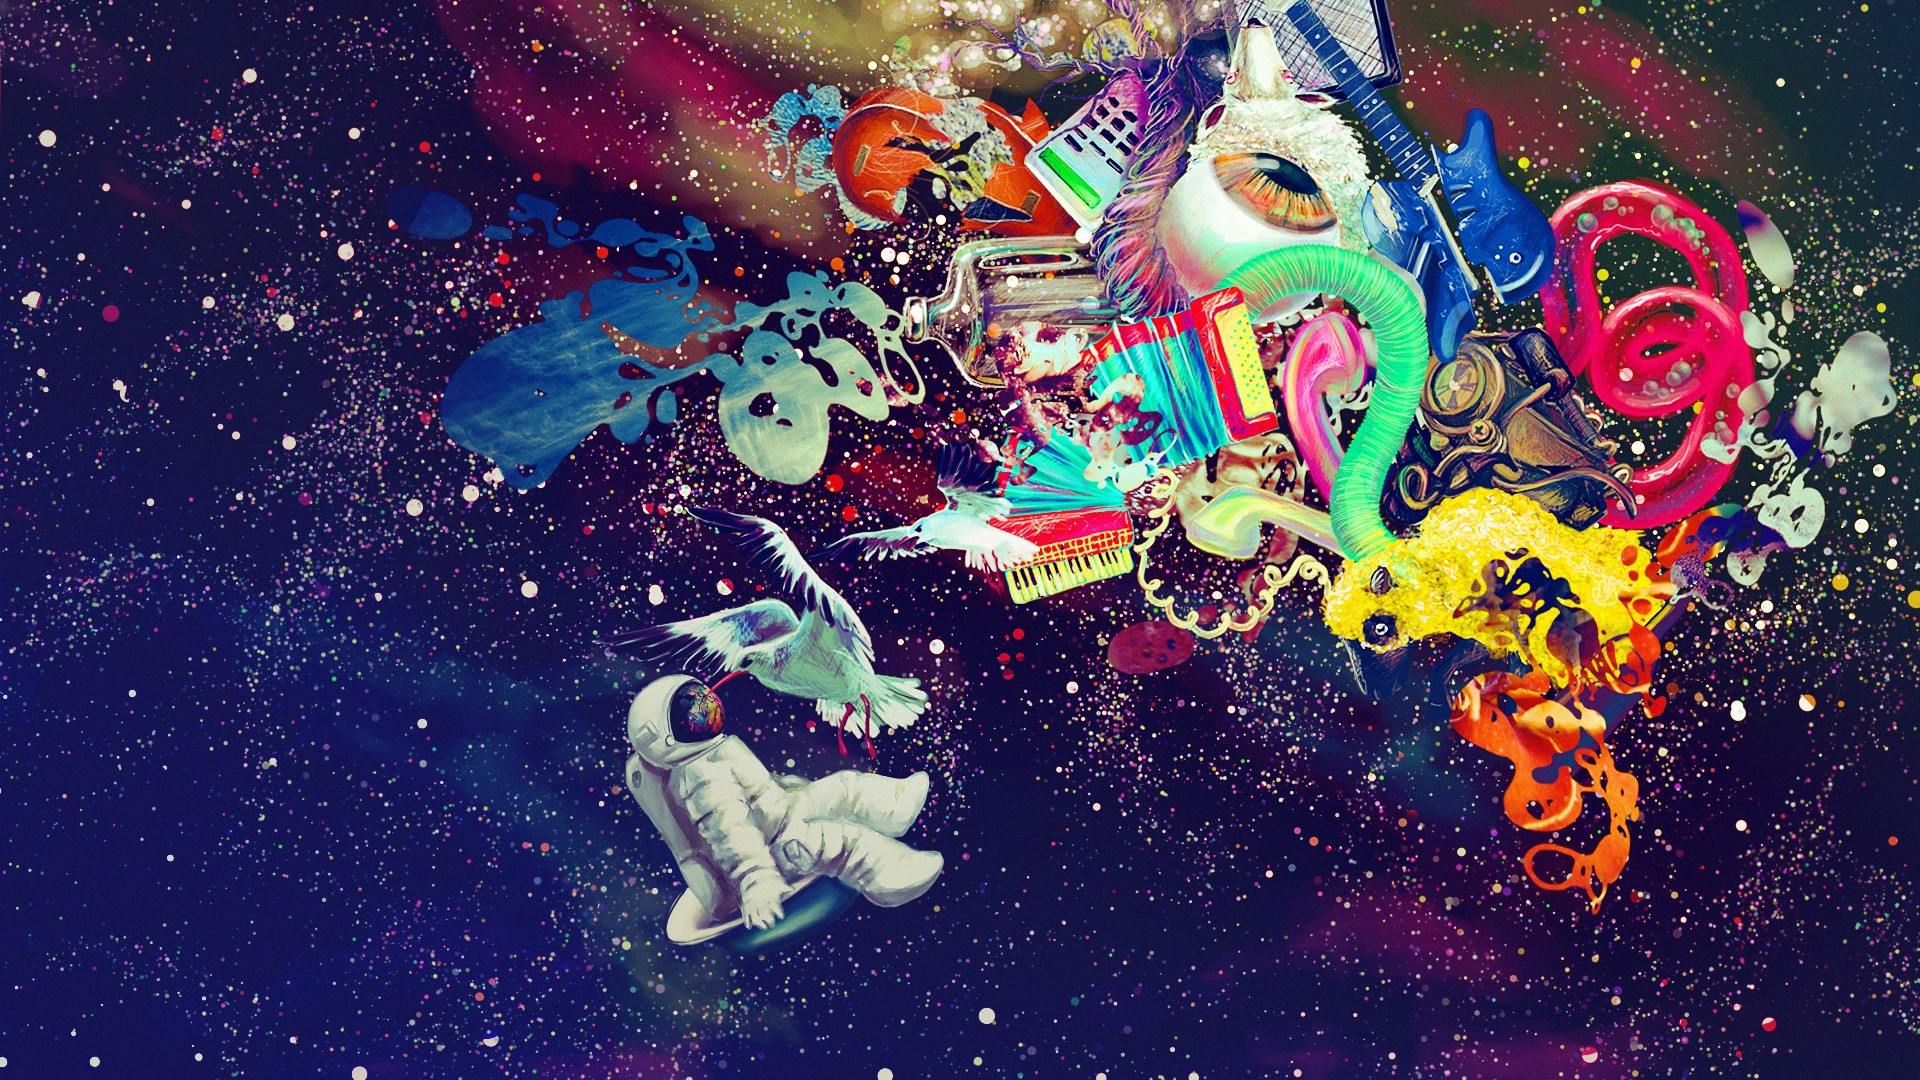 516 Psychedelic HD Wallpapers Backgrounds   Page 9 1920x1080